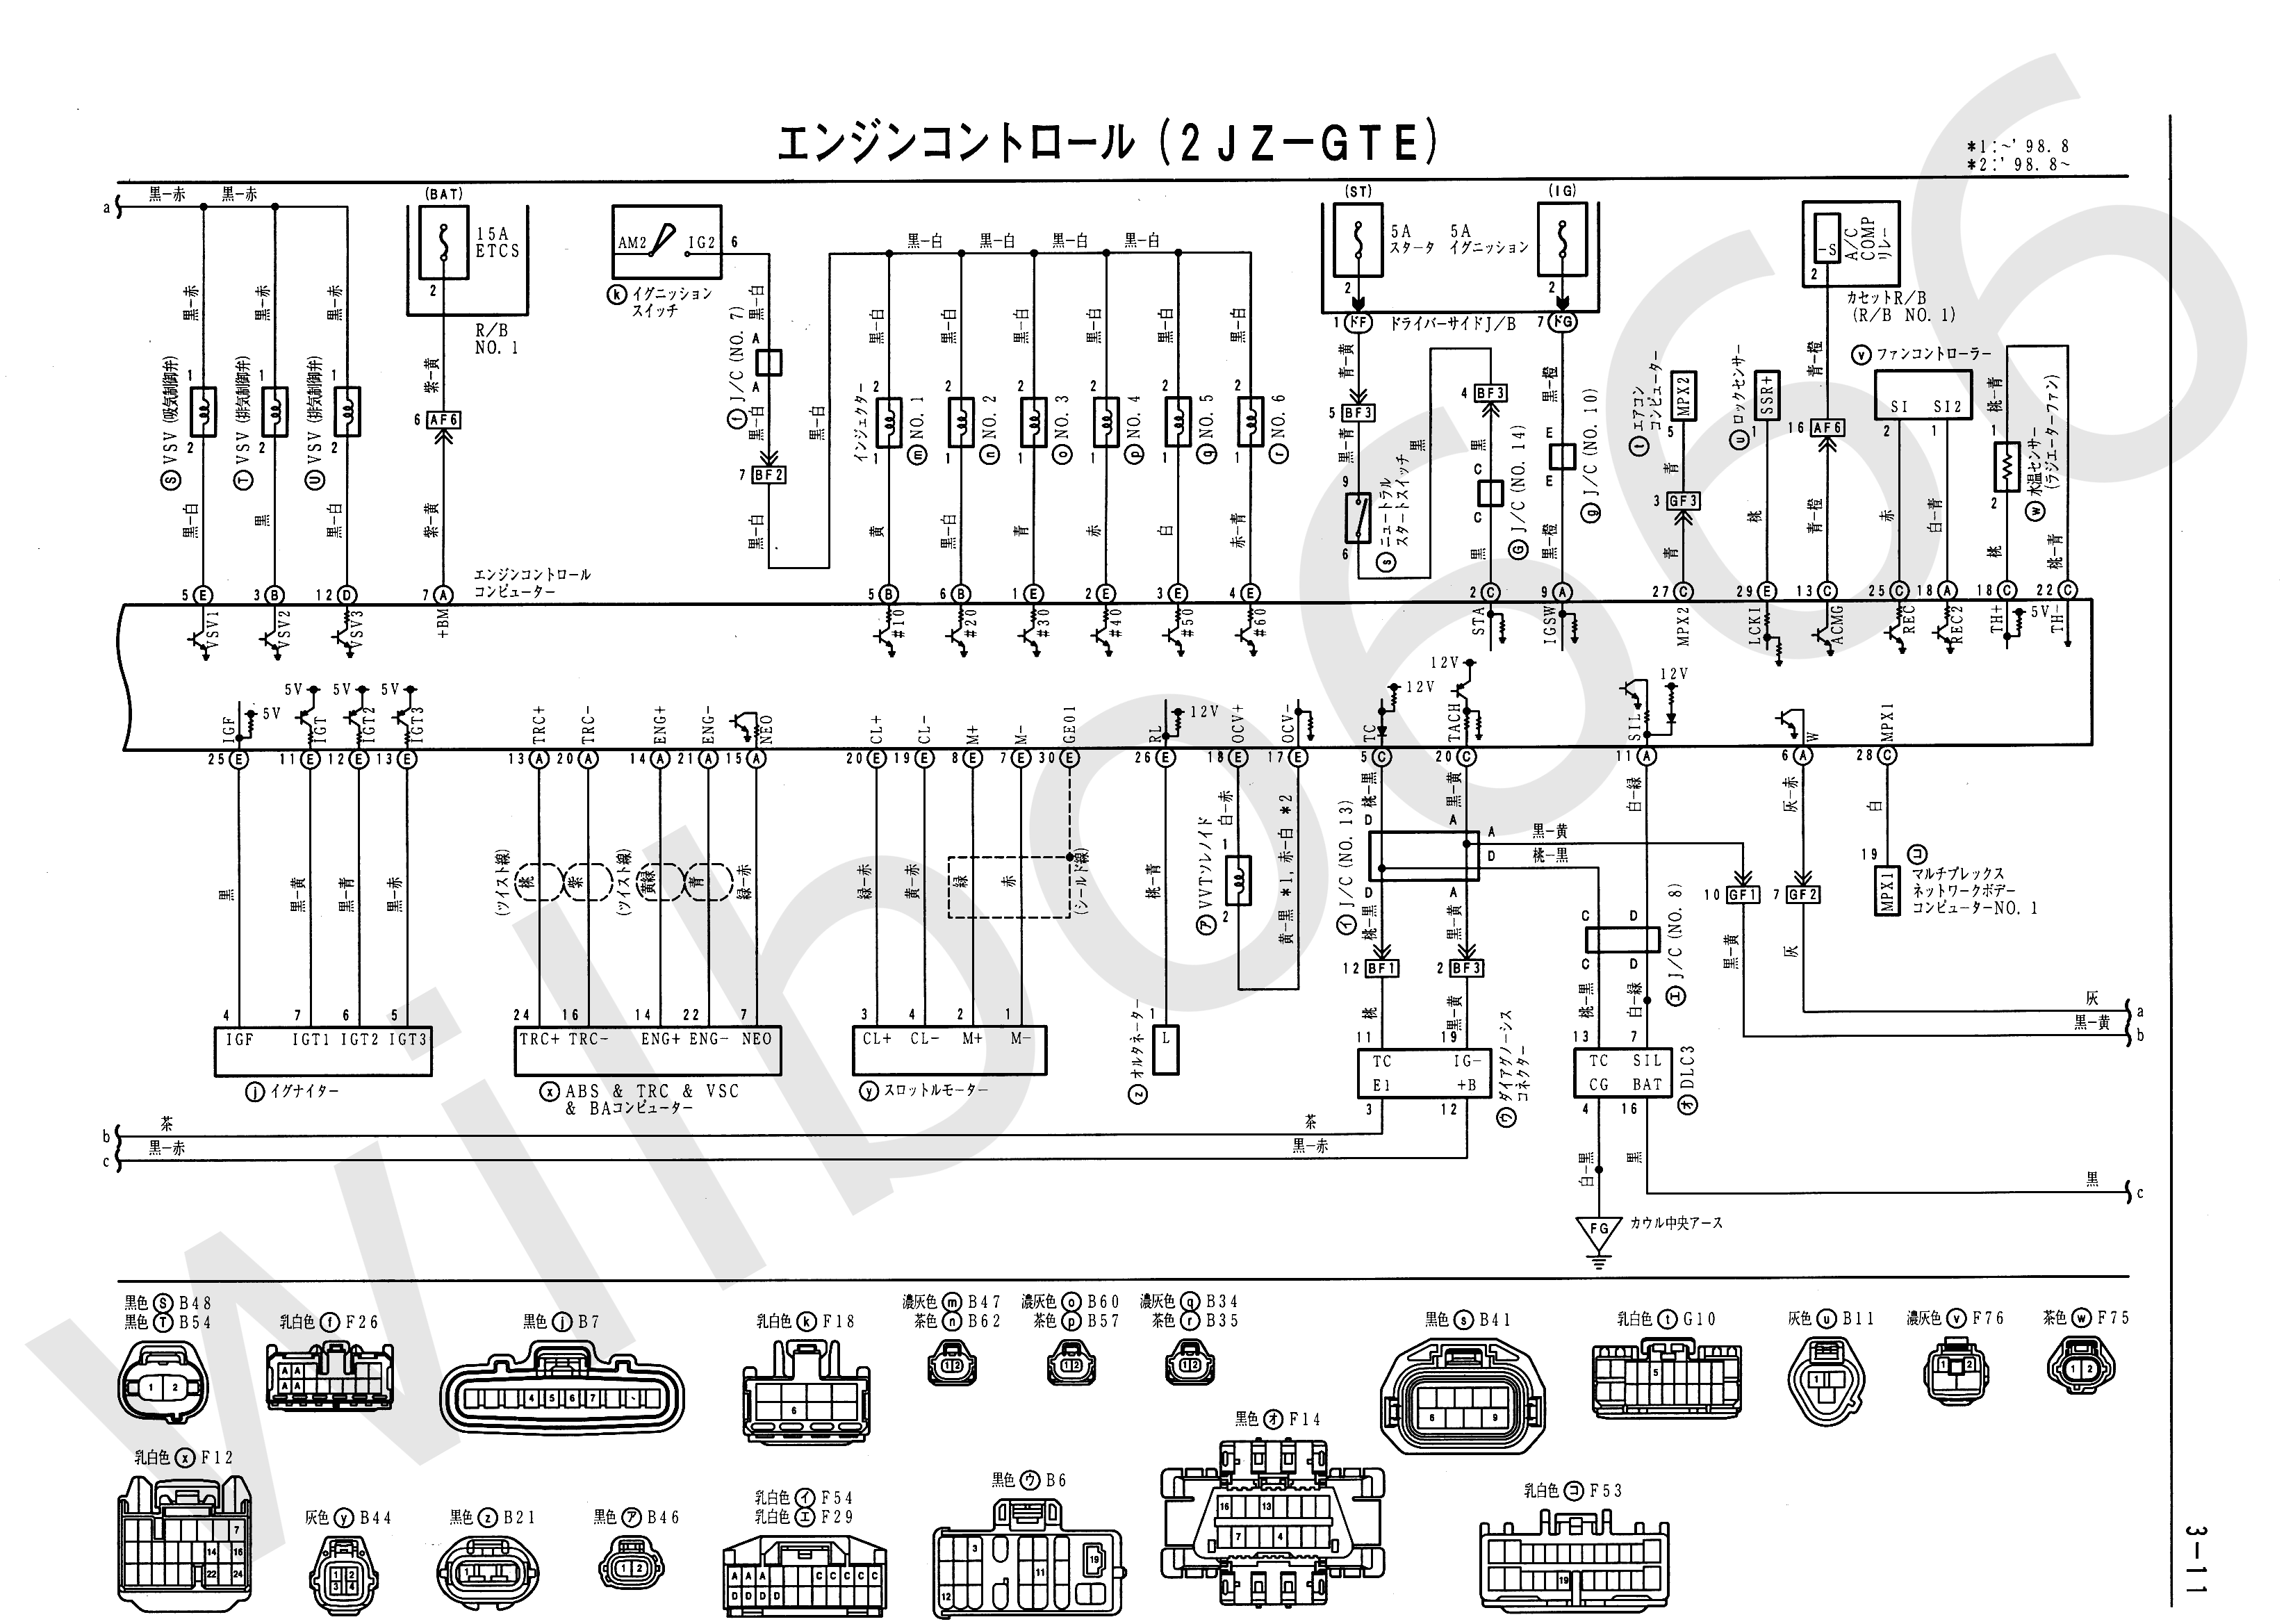 JZS161 Electrical Wiring Diagram 6748505 3 11 2jz wiring diagram 2jz wiring diagrams instruction  at virtualis.co